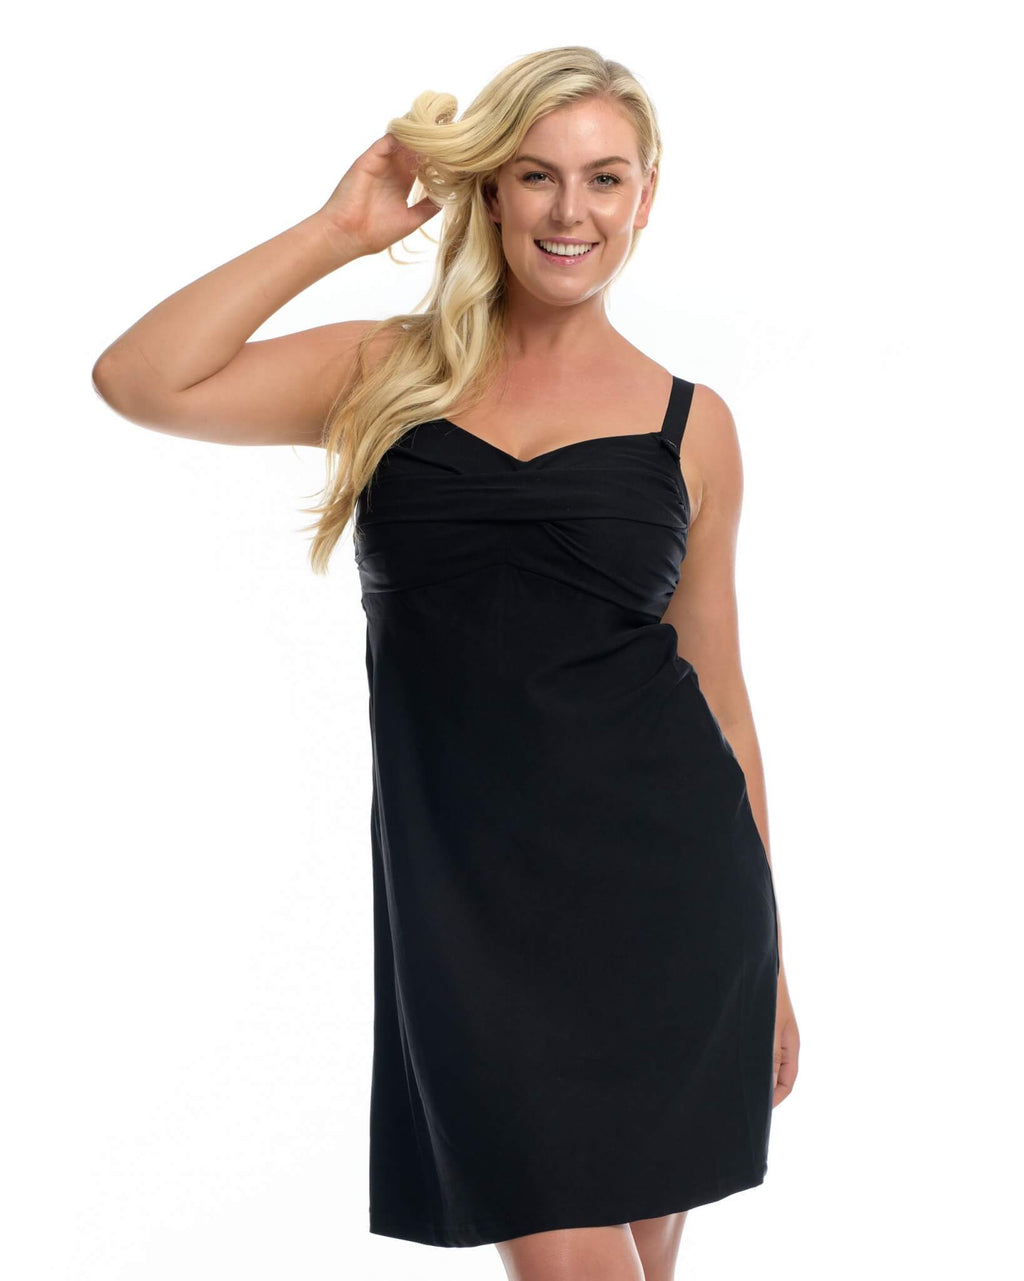 The Classic Nursing LBD by Full Embrace